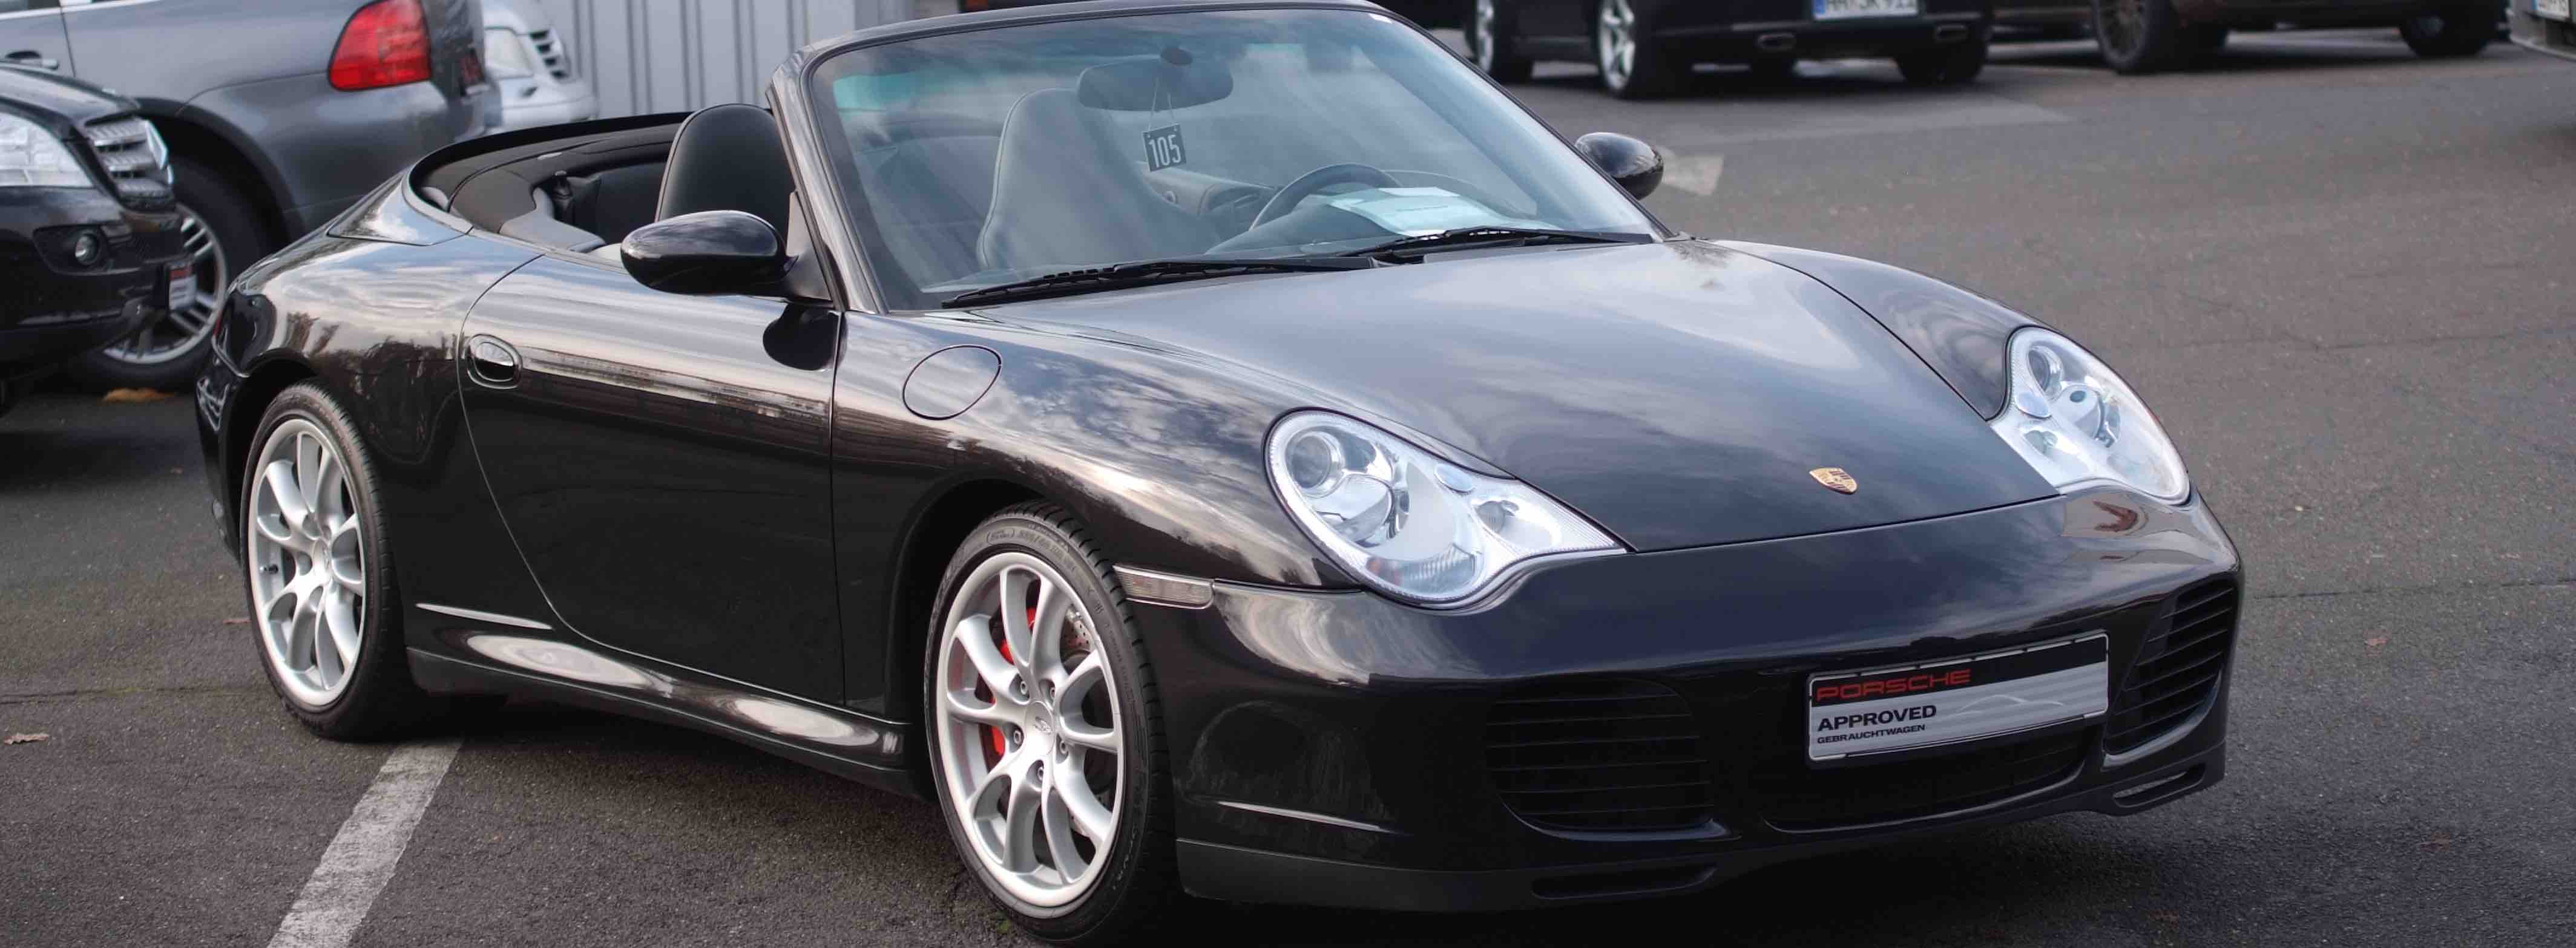 Options Porsche occasion 996 3l6 carrera